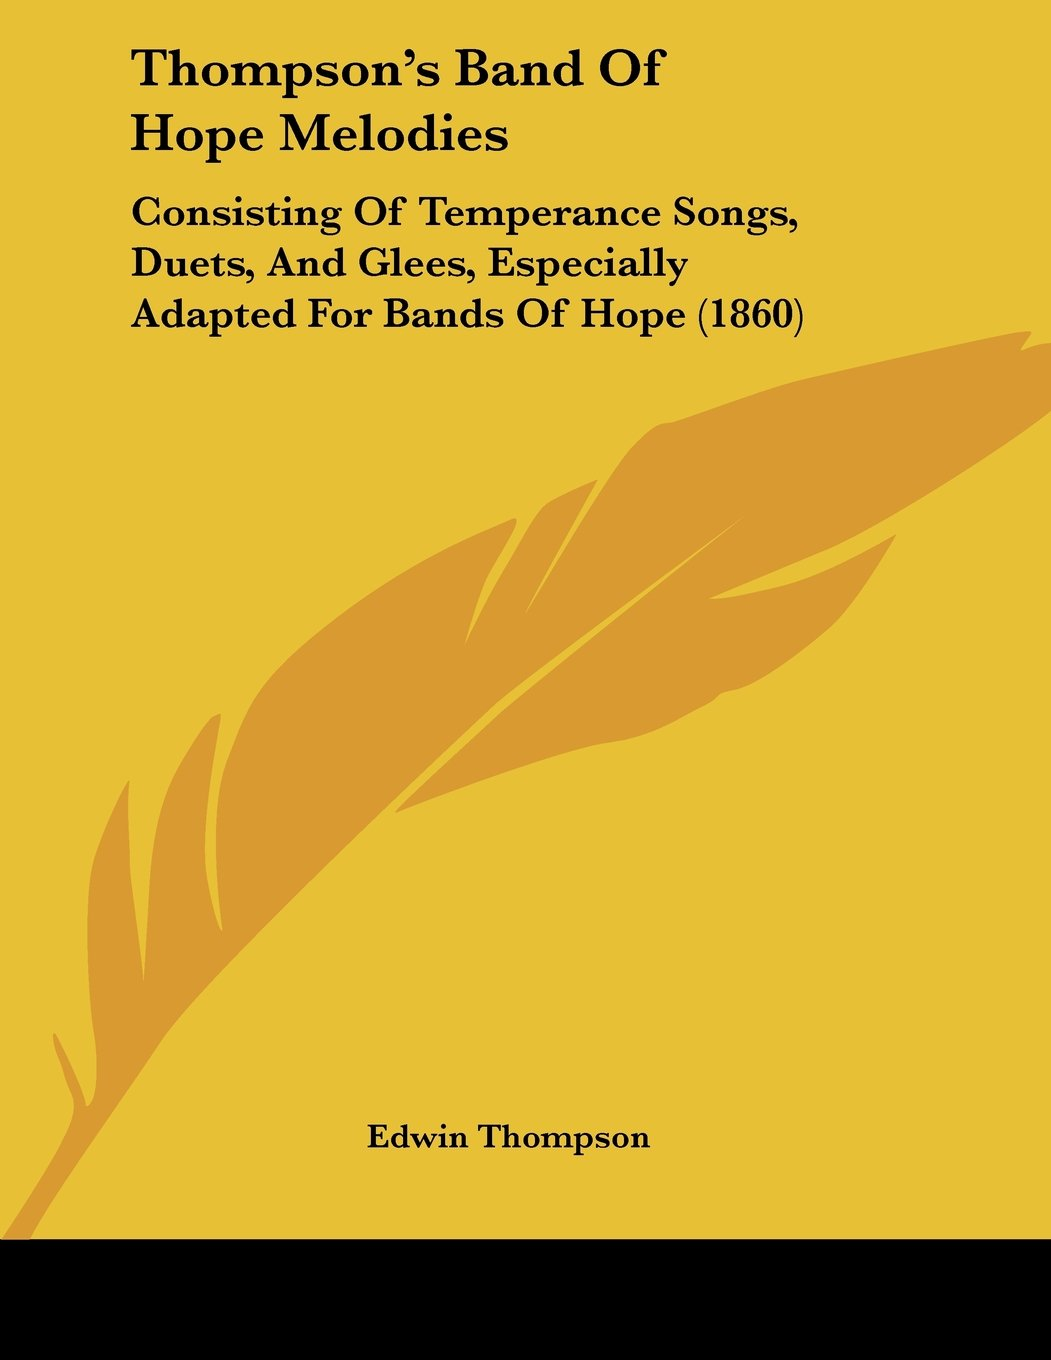 Thompson's Band Of Hope Melodies: Consisting Of Temperance Songs, Duets, And Glees, Especially Adapted For Bands Of Hope (1860) ebook